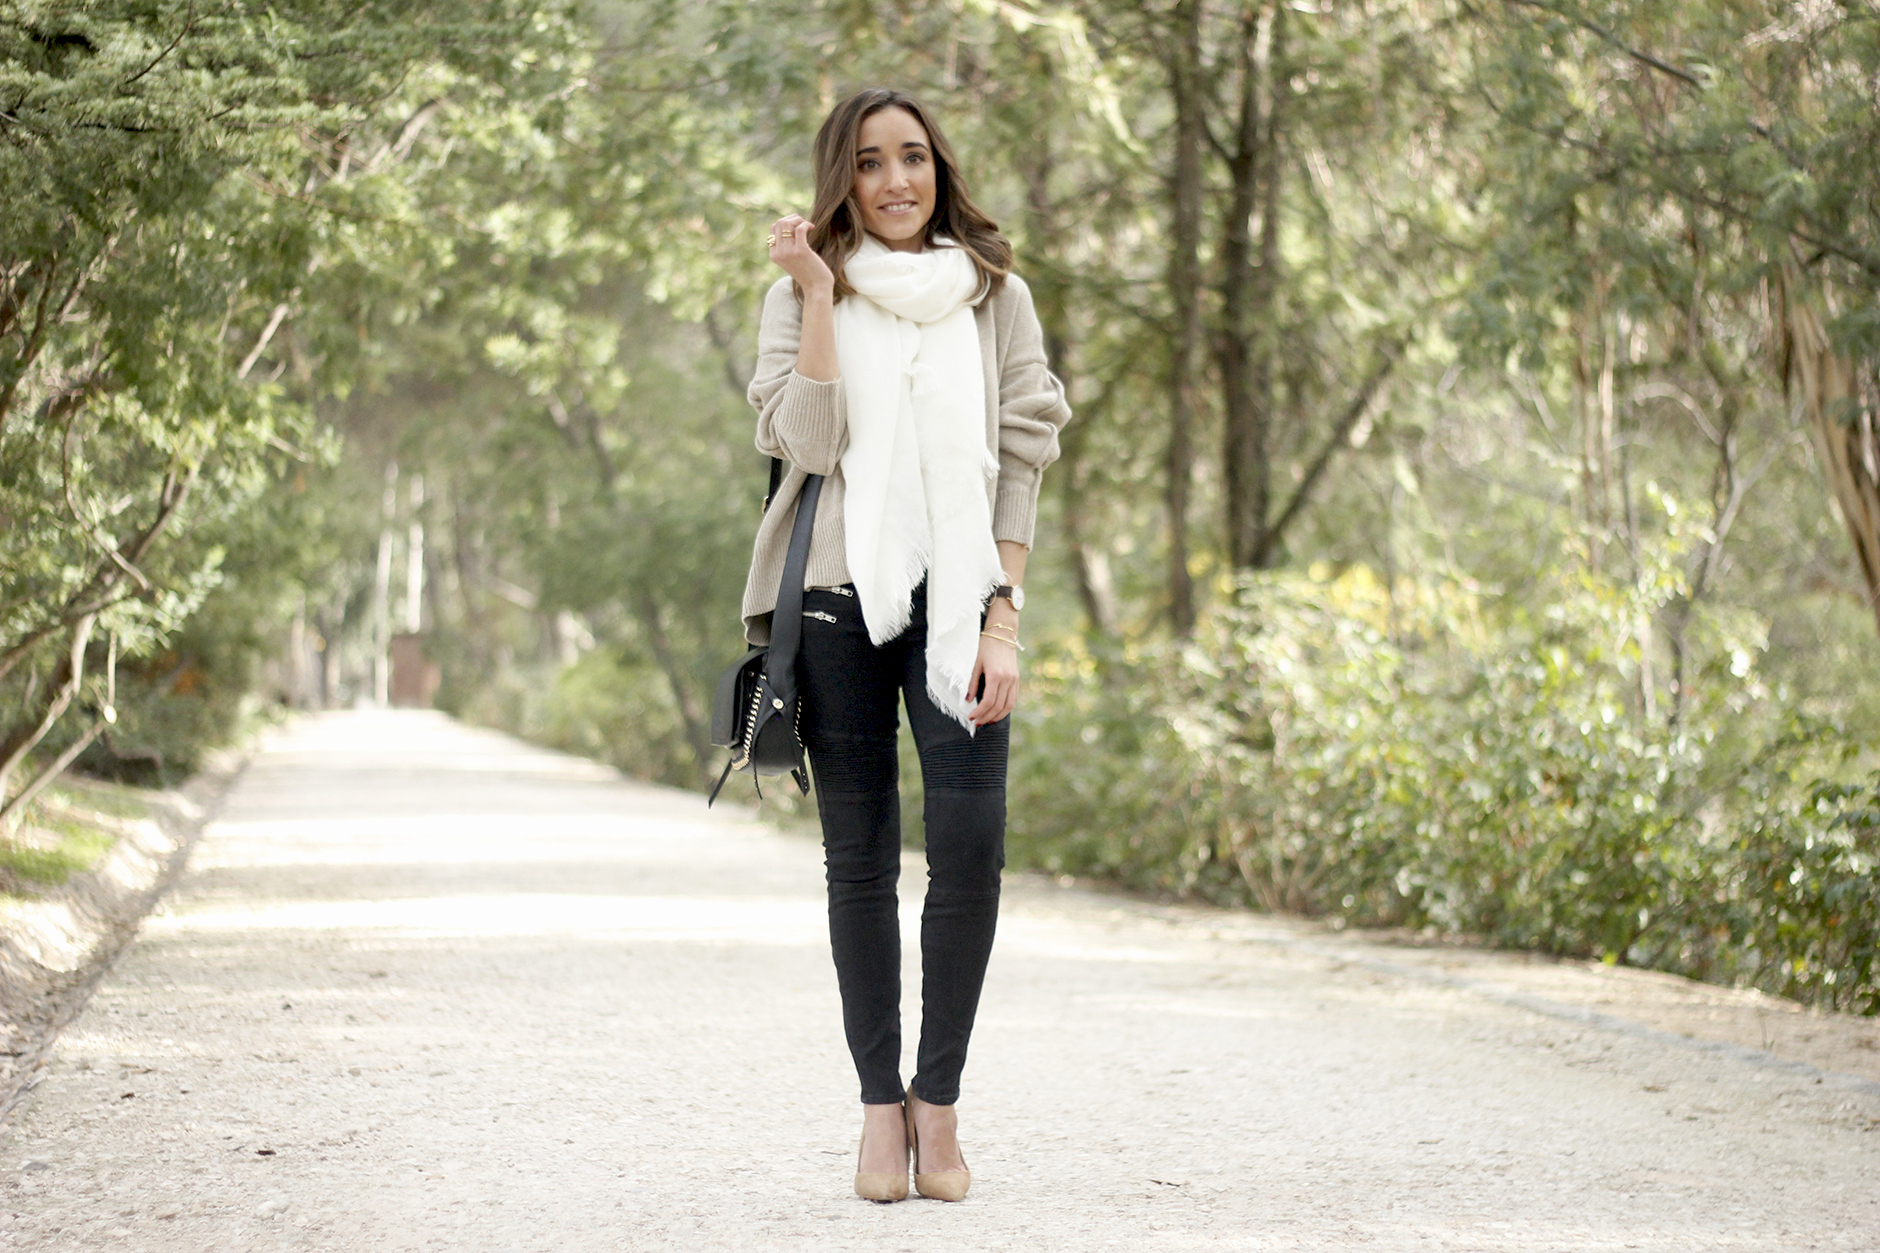 Beige Sweater Black Jeans Nude Heels White Scarf Coach Bag Outfit Style03